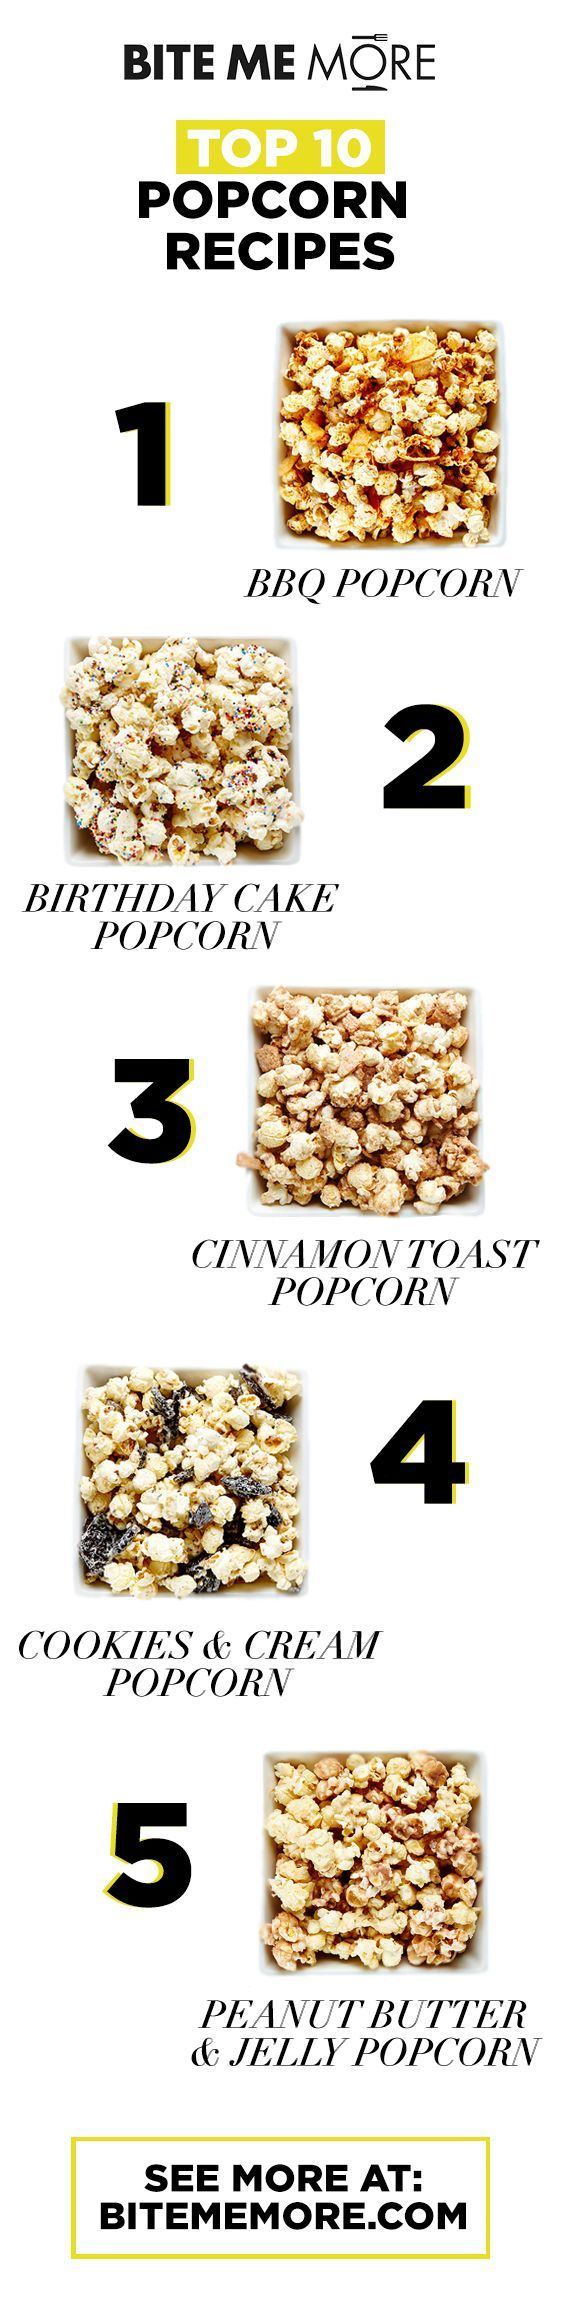 Pair your favourite movie with one or ALL of these delicious popcorn recipes! #BiteMeMore #Recipes #Popcorn